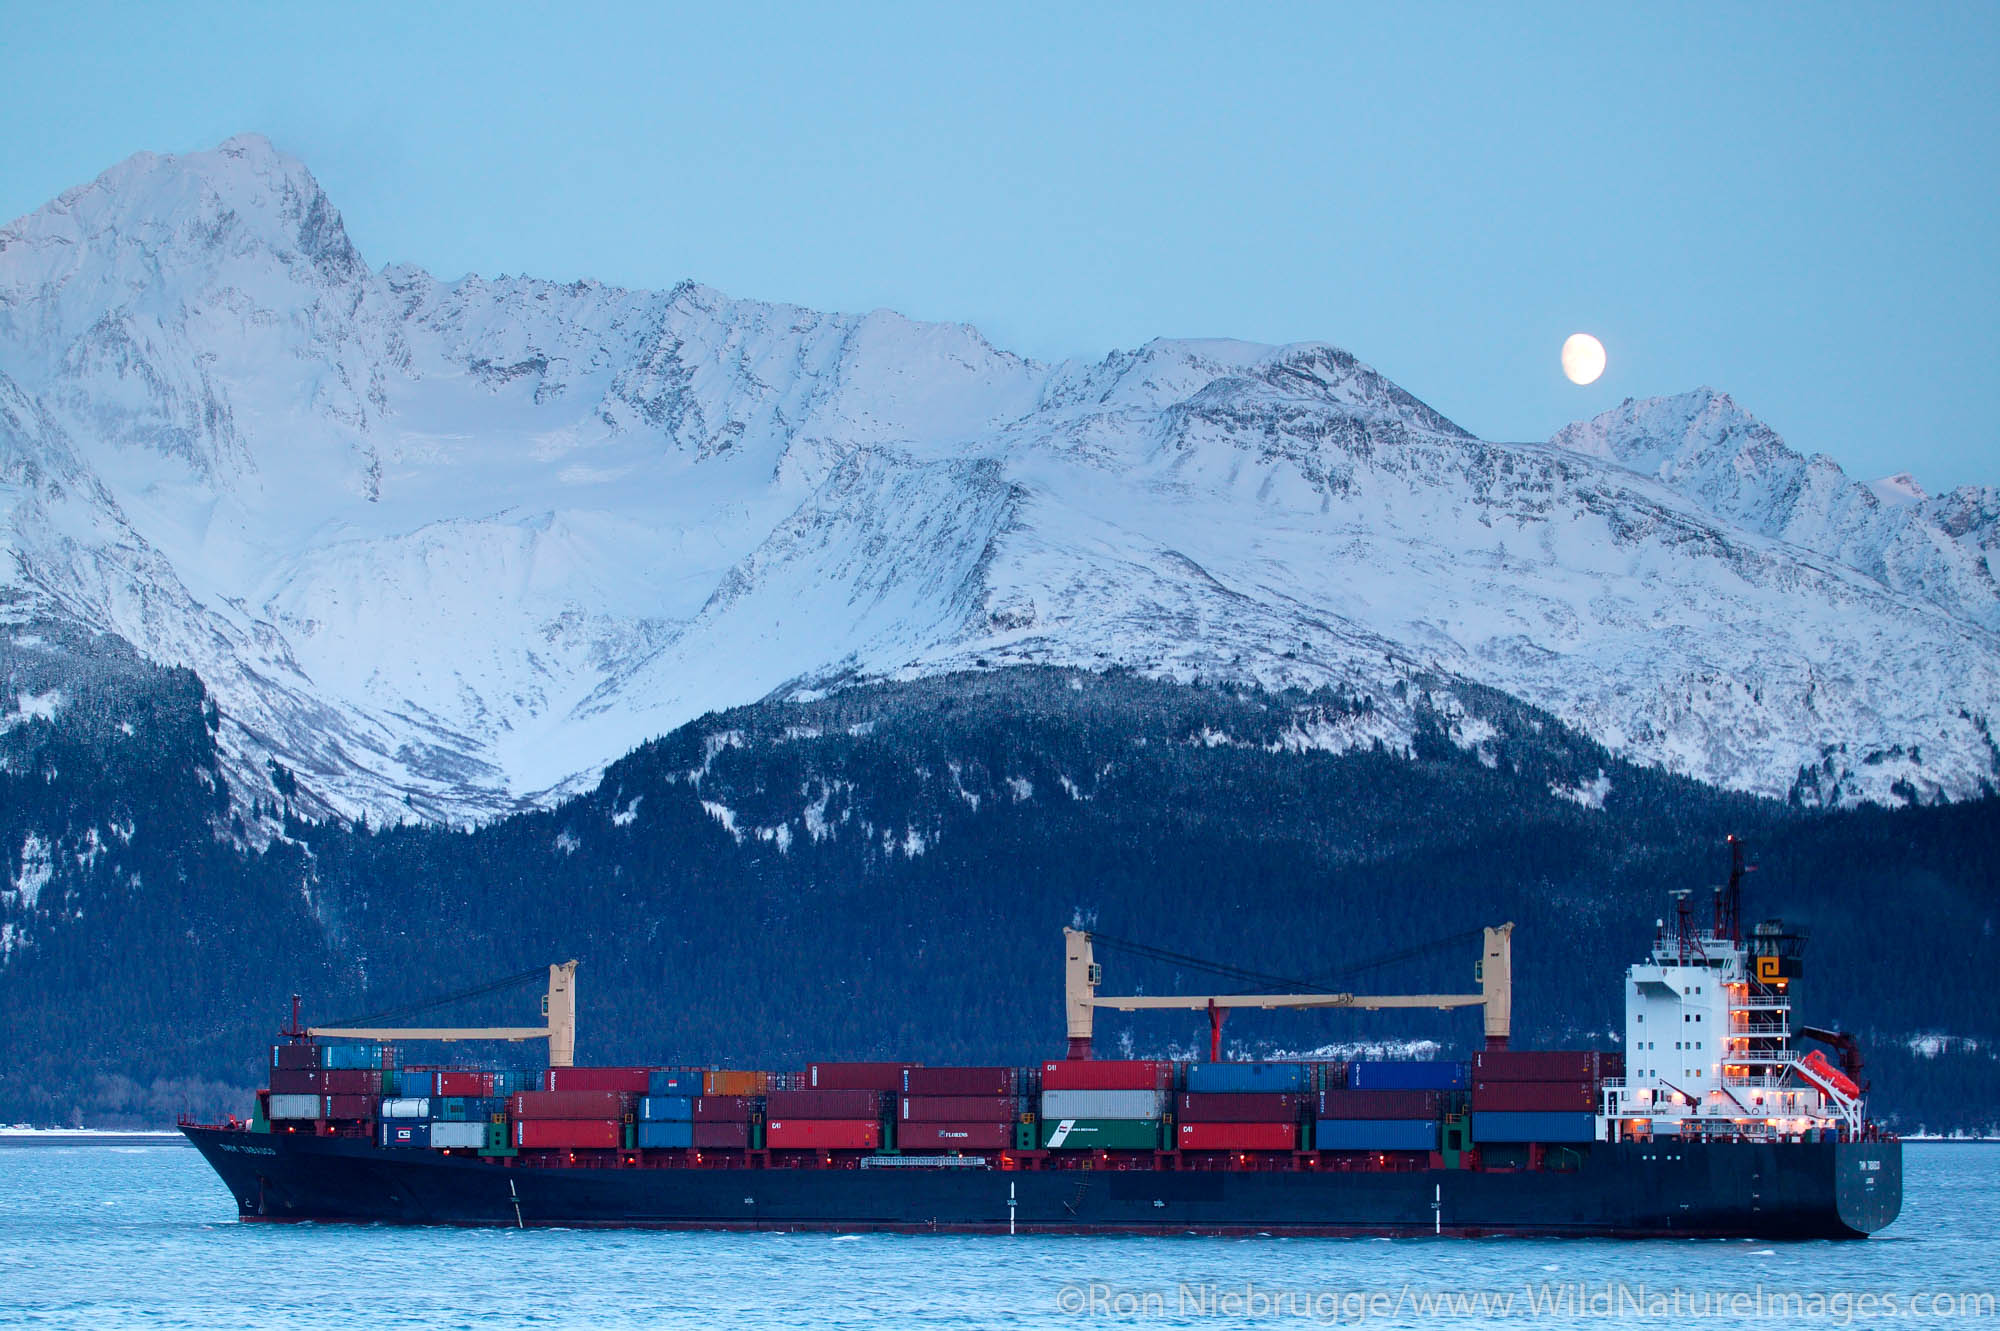 The United Kingdom flagged container ship TMM Tabasco in Resurrection Bay under a full moon and in front of Mount Alice and the...